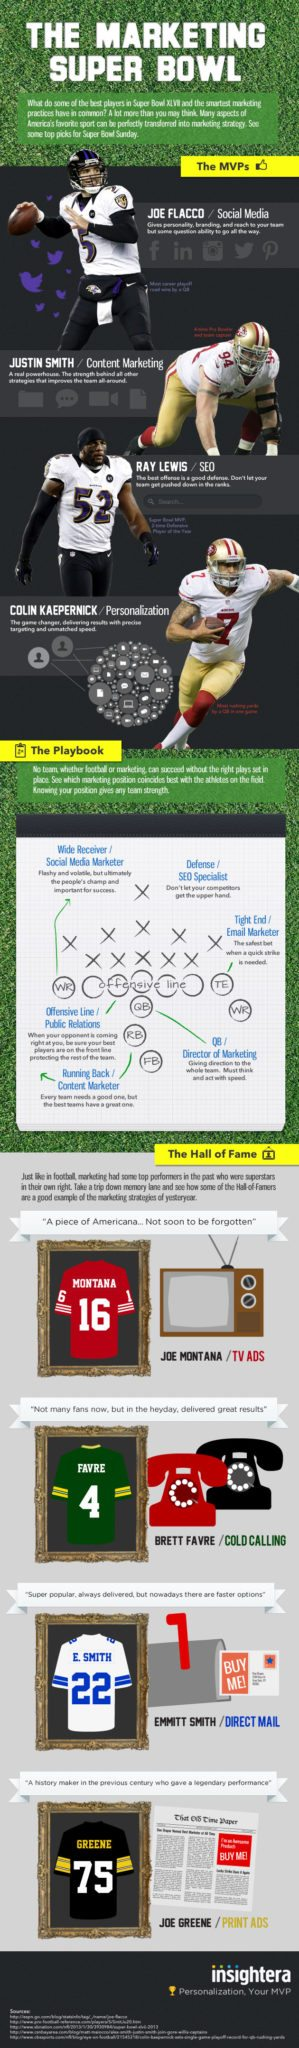 MarketingSuperBowlInfographic-21